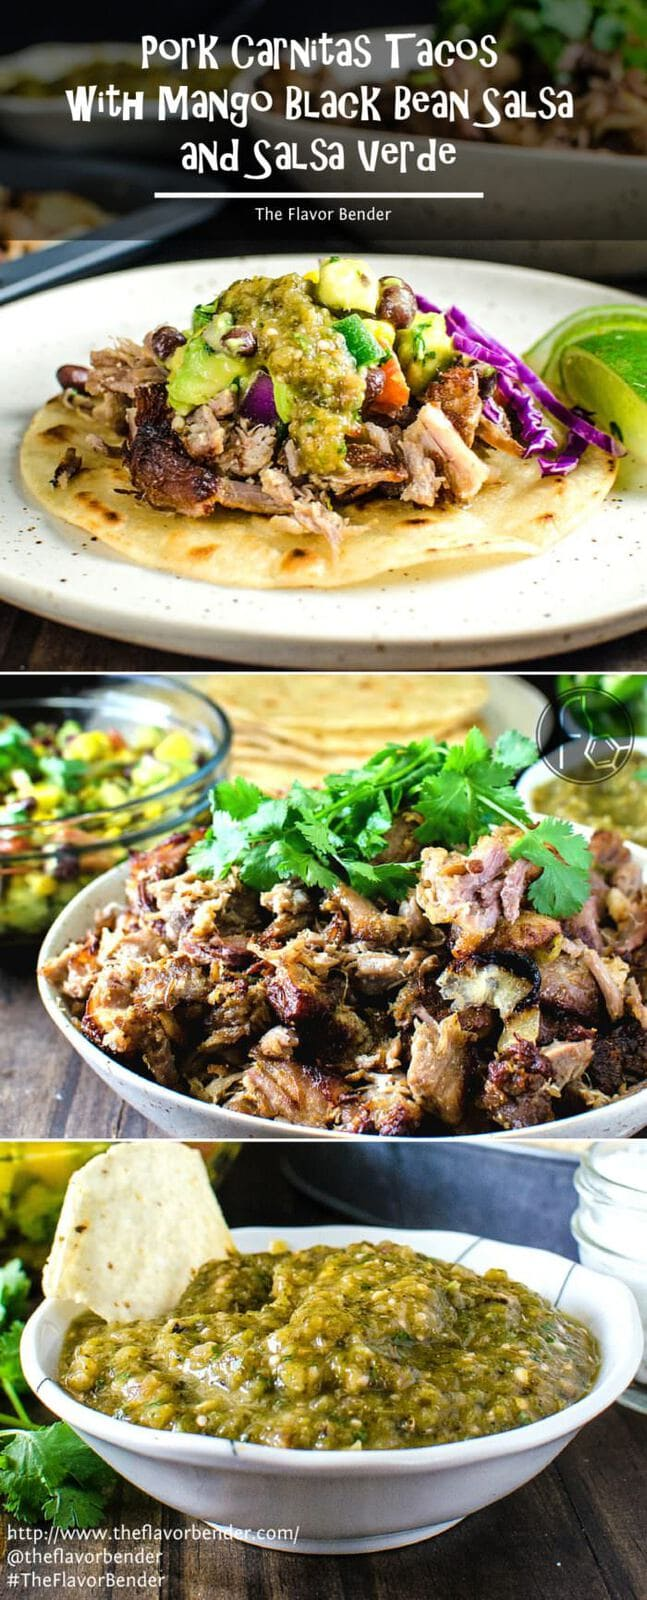 Pork Carnitas Tacos with Mango Black Bean Salsa and Salsa Verde - Make Taco night extra special with this Moist, juicy, tender pork carnitas with crisp brown edges, and a fresh, colorful, fruity mango black bean salsa, topped with roasted tomatillo salsa verde on slightly toasted tortillas. REPIN to save. CLICK to get the recipe. #TheFlavorBender